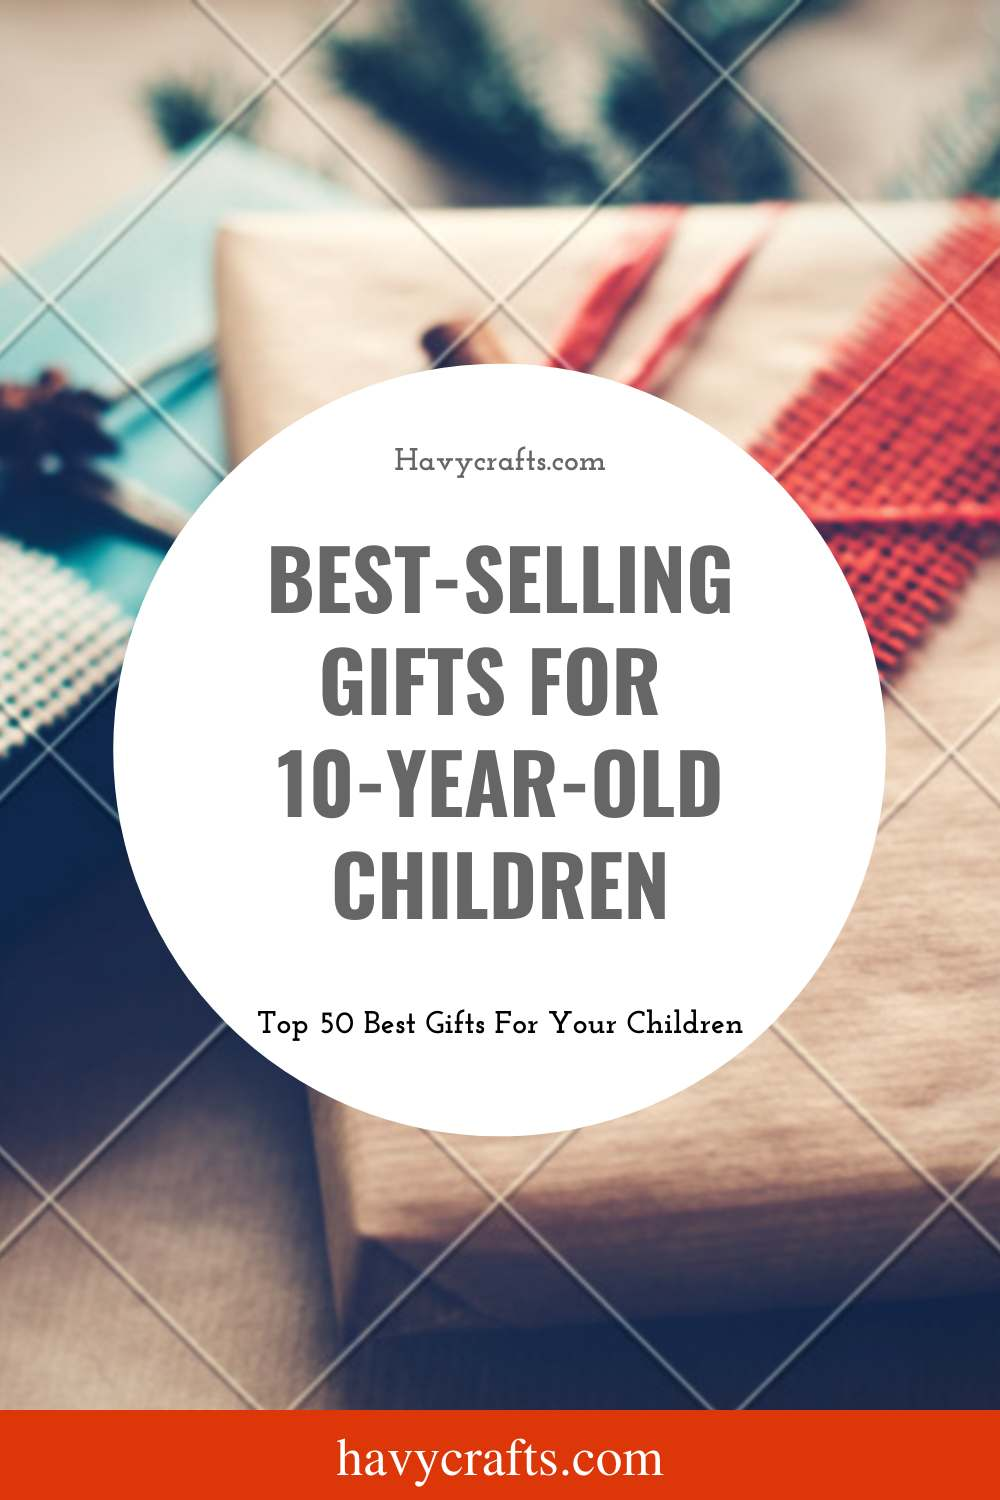 Best selling gifts for 10 year old children